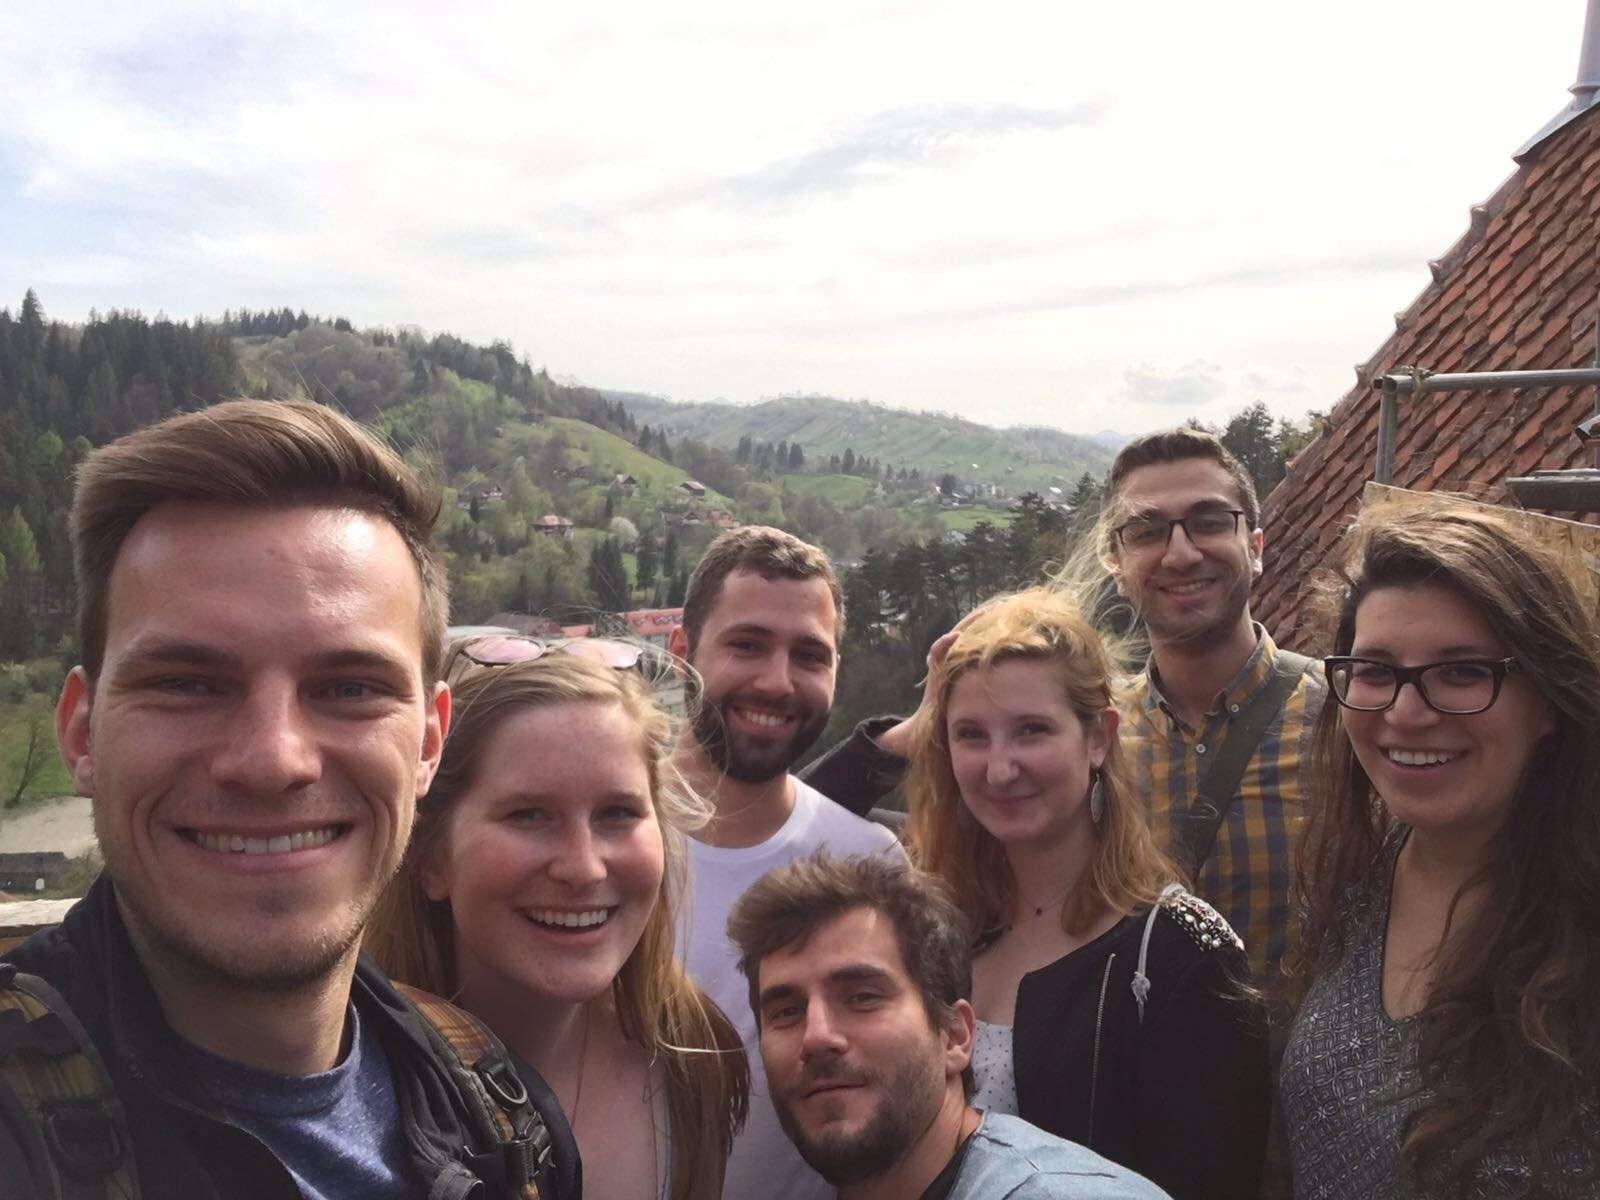 The organizers enjoying Dracula's Castle at the end of the field trip